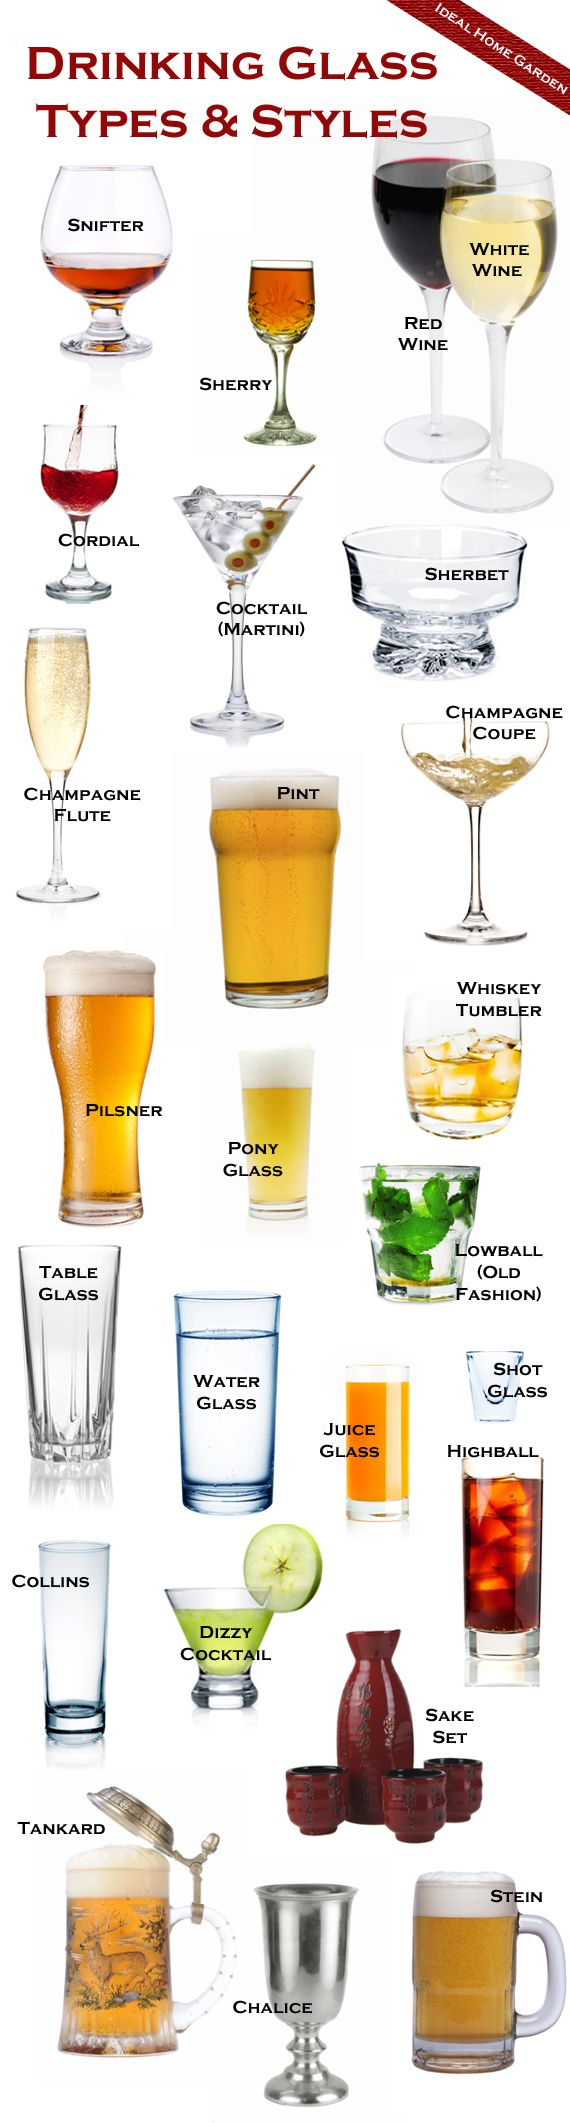 The different types of drinking glasses, and explanations of what they're used for.